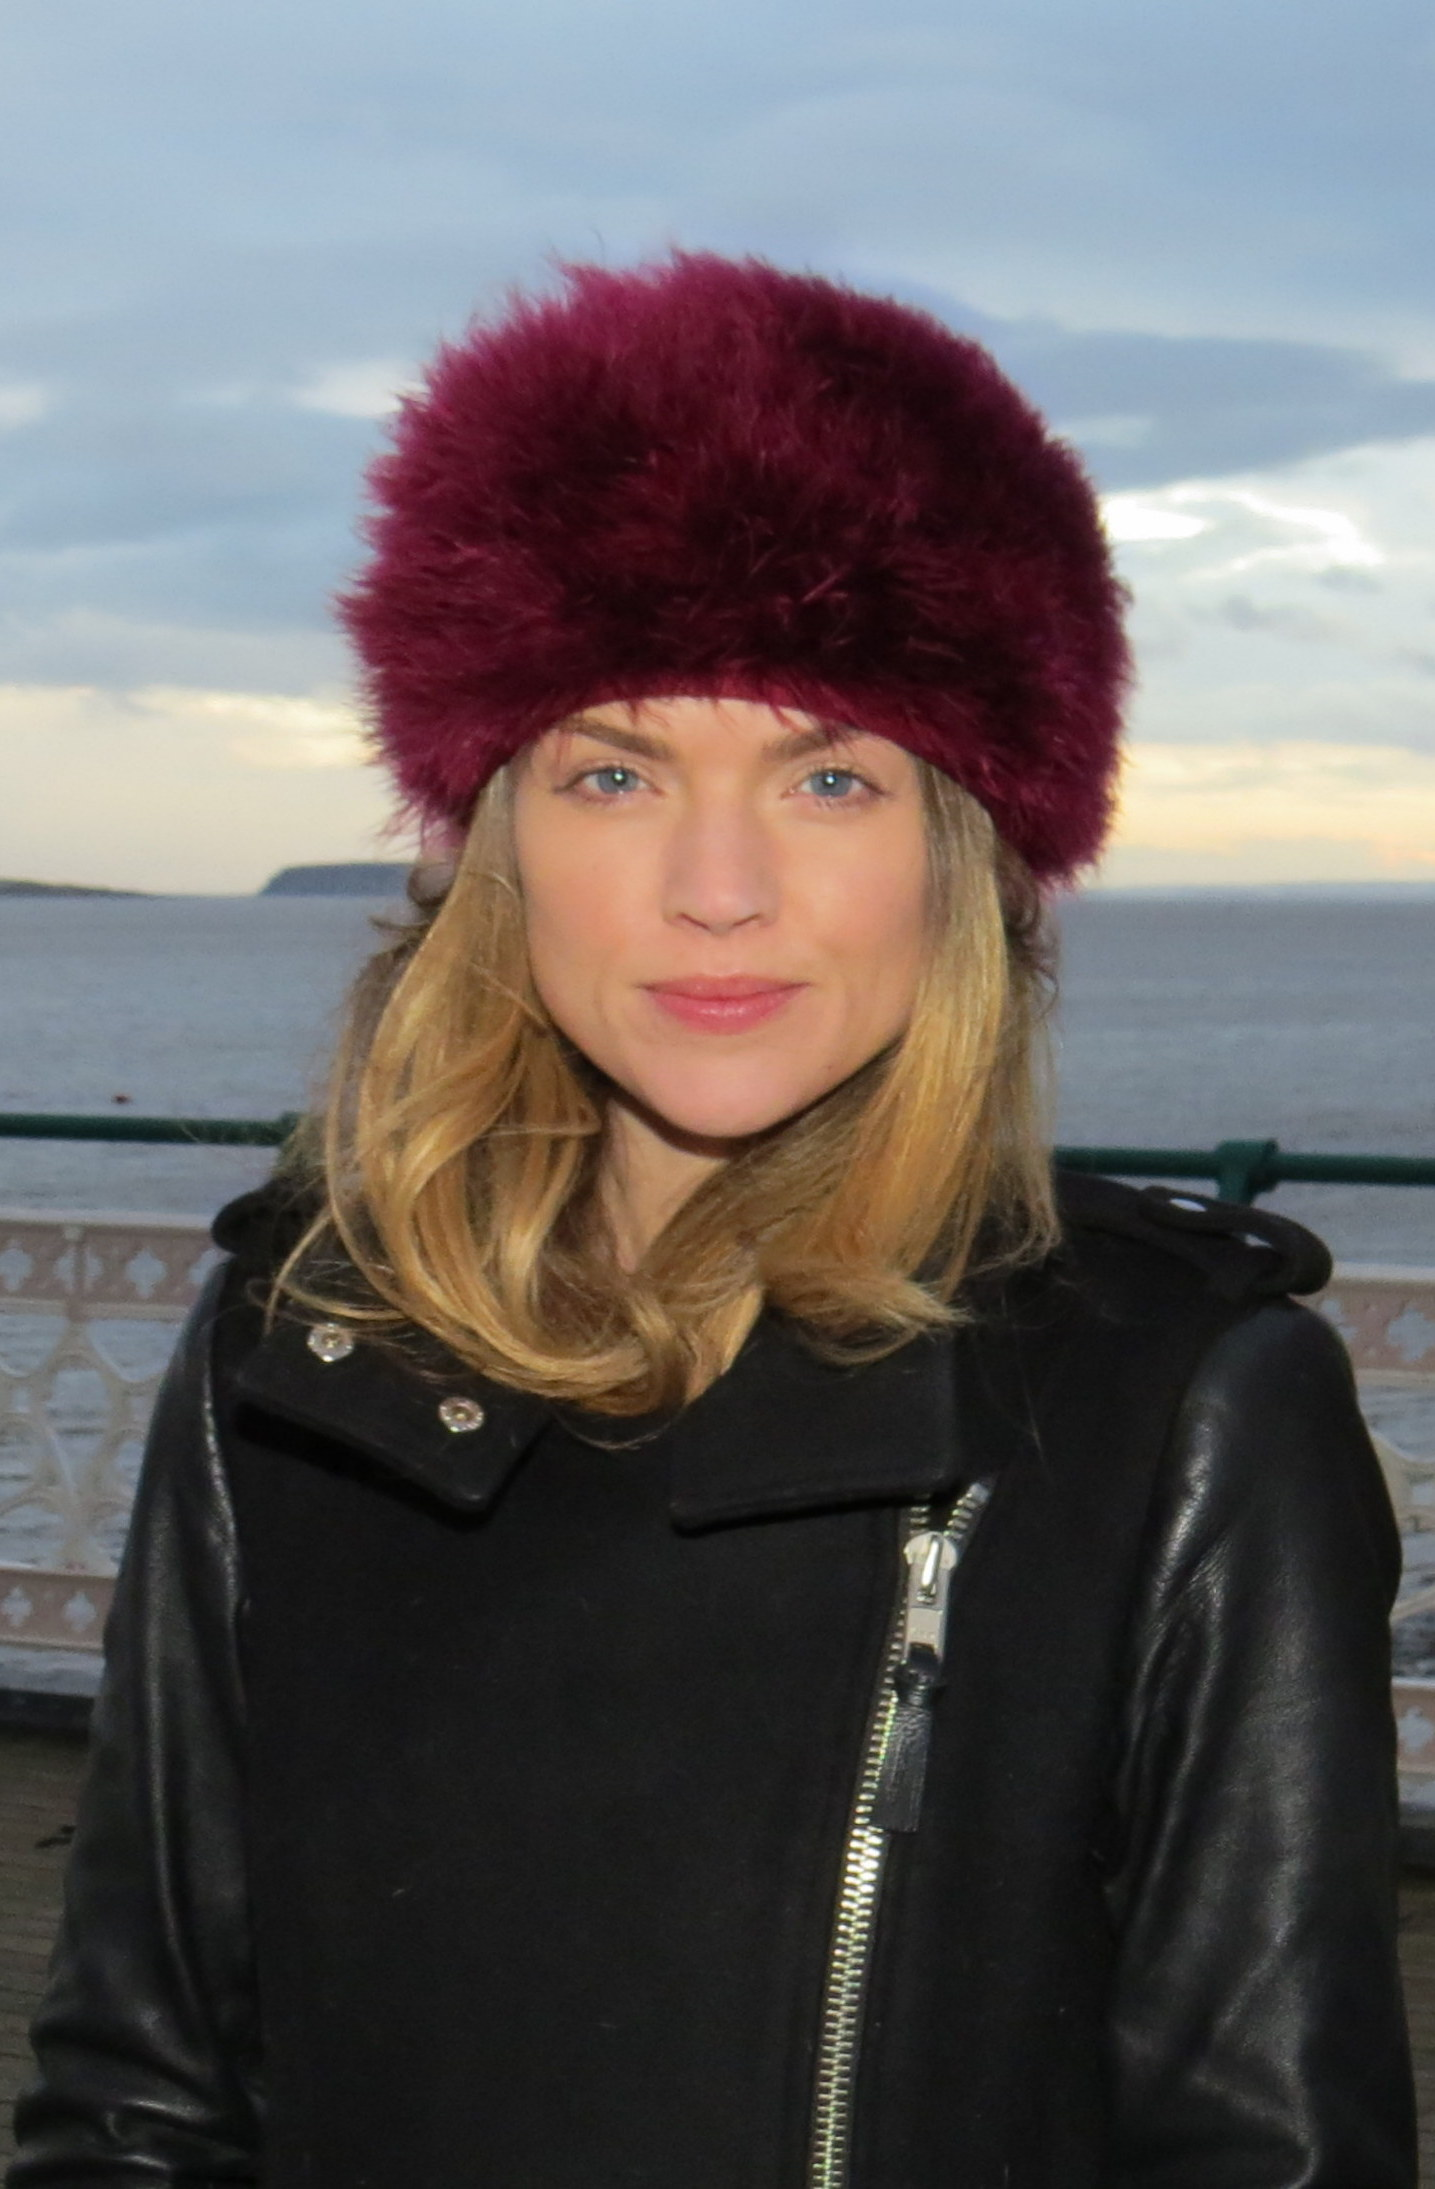 The 32-year old daughter of father (?) and mother(?) Erin Richards in 2018 photo. Erin Richards earned a  million dollar salary - leaving the net worth at 3 million in 2018